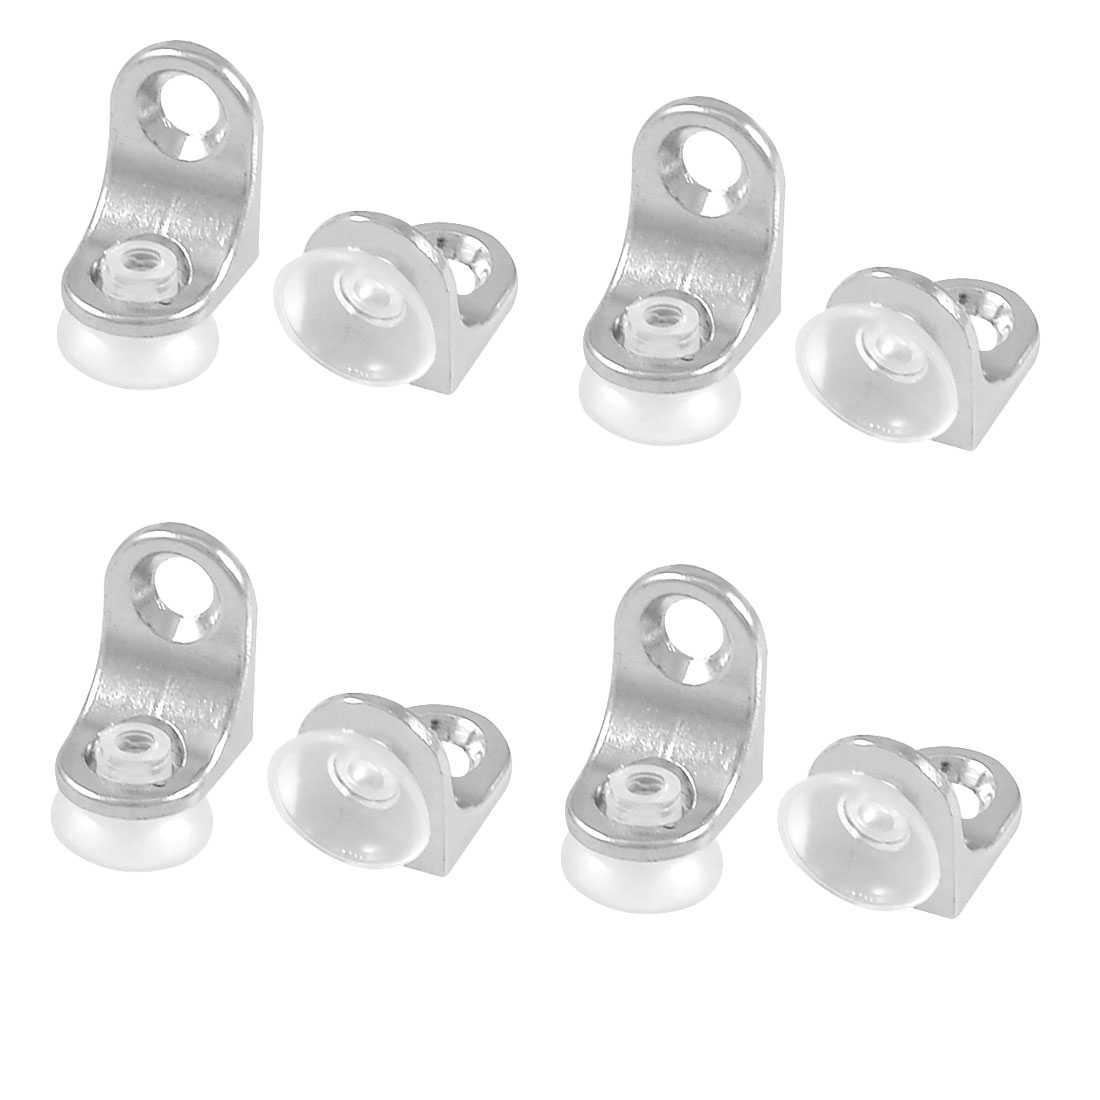 8 Pcs Glass Shelf Mounting Silver Tone Metal Support Holder Bracket